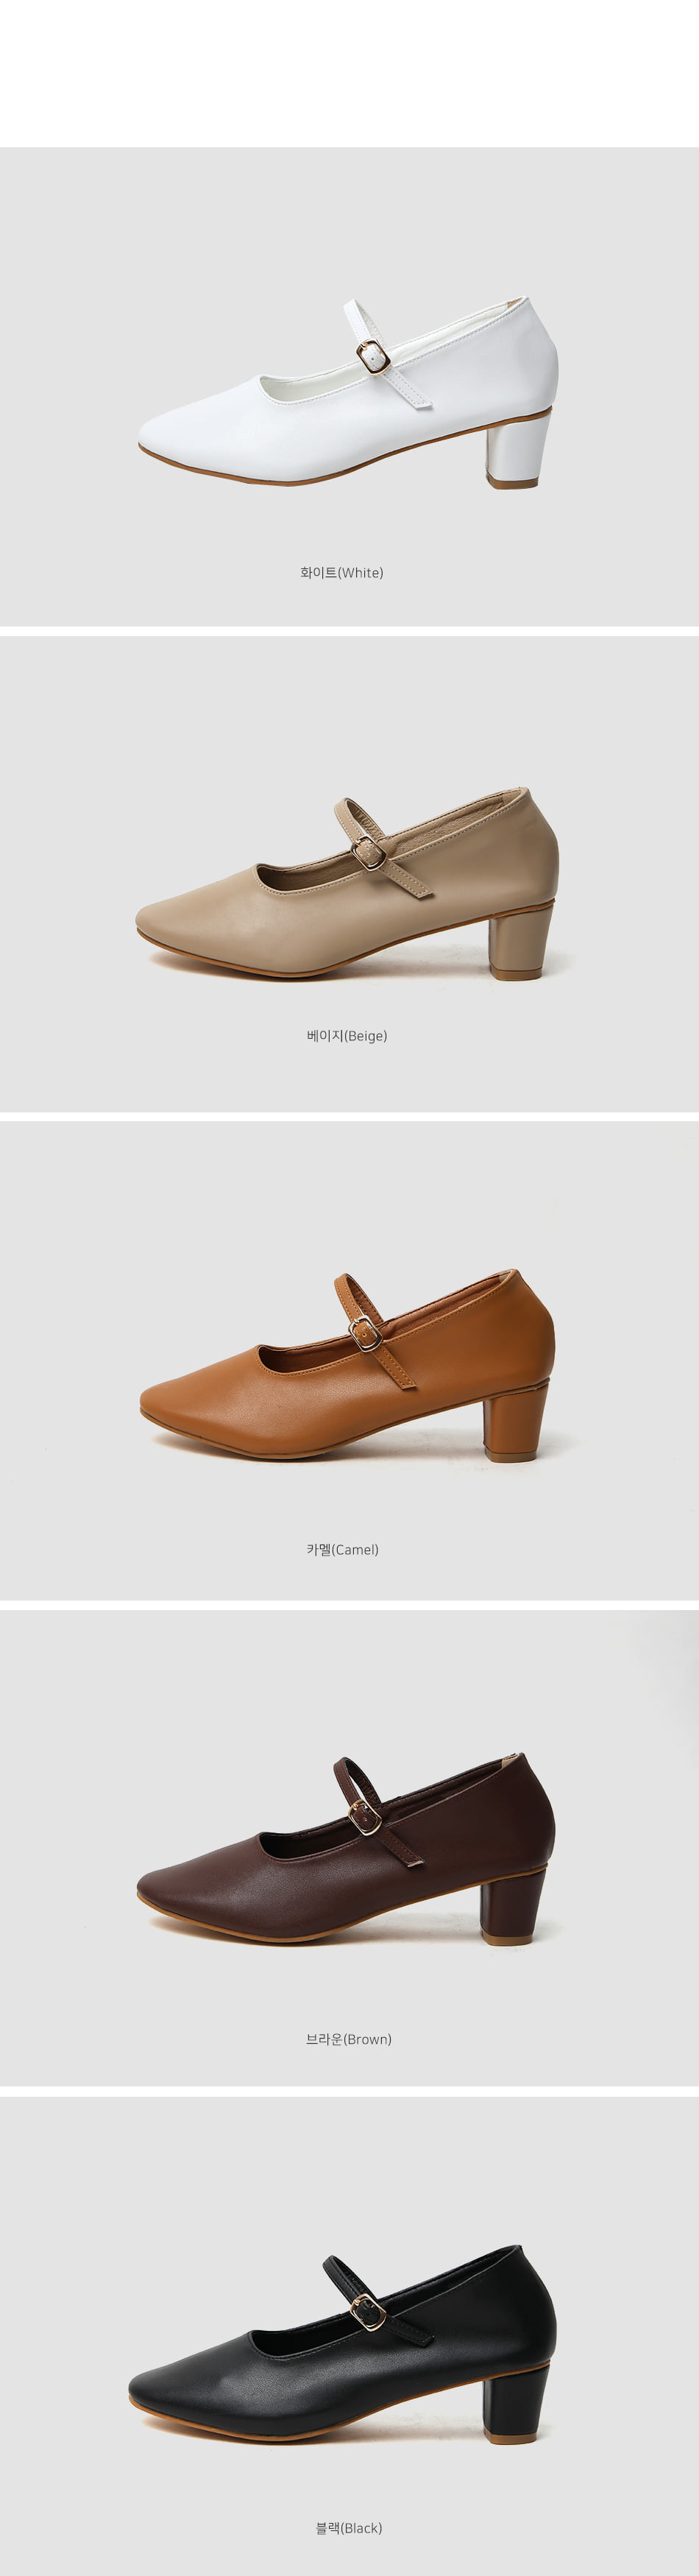 Depoen Mary Jane Middle Hill Pumps 4cm